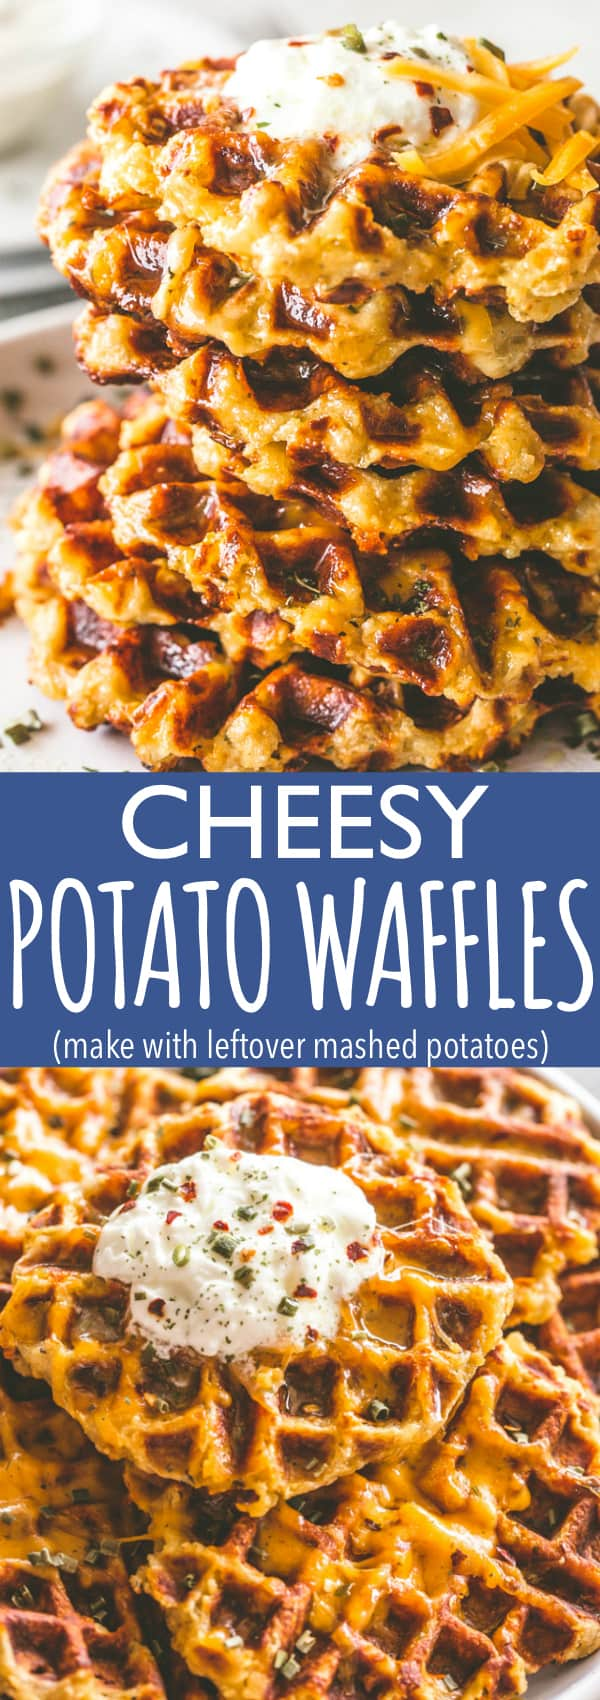 Cheesy Potato Waffles - Delicious, cheesy, and savory waffles prepared with leftover mashed potatoes and cheddar cheese. Crispy on the outside and fluffy on the inside, these potato waffles not only taste amazing, but they are a super fun meal to serve to your family. #potatoes #waffles #potatowaffles #cheese #leftovers #thanksgivingleftovers #mashedpotatoes #leftovermashedpotatoes #cheddarcheese #breakfast #brunch